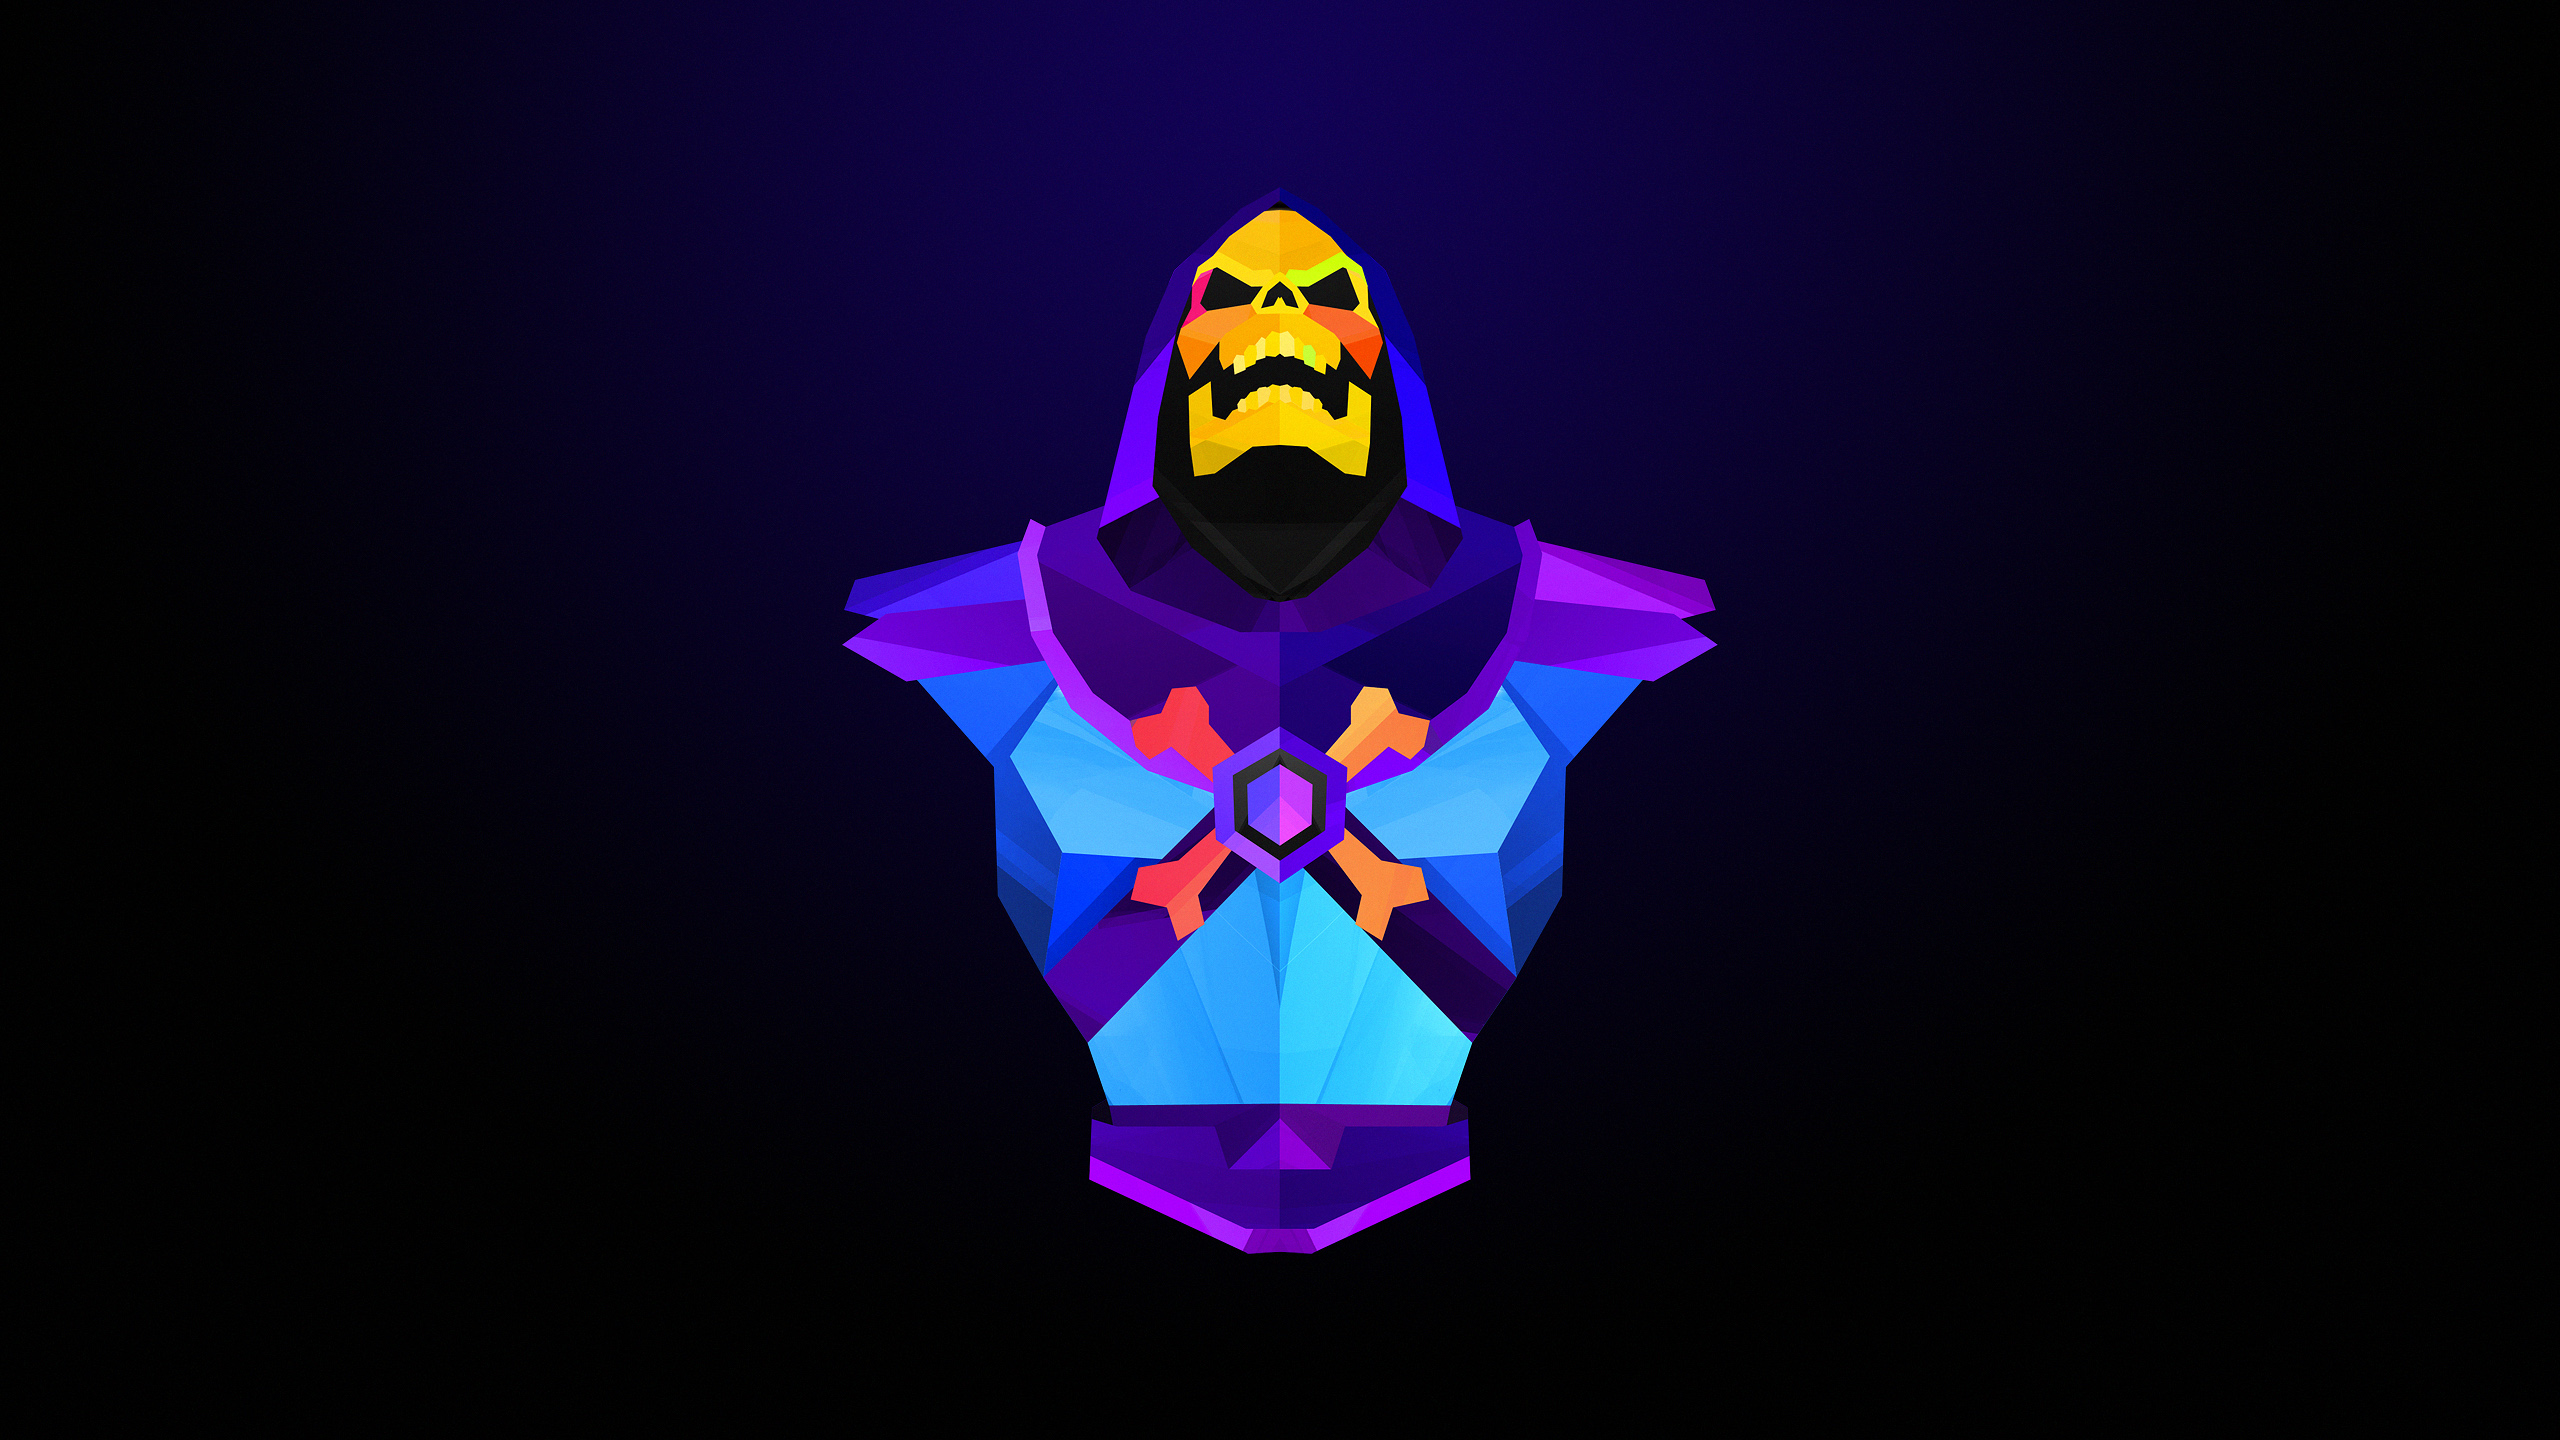 skeletor by justin maller 2560x1440 do you know more